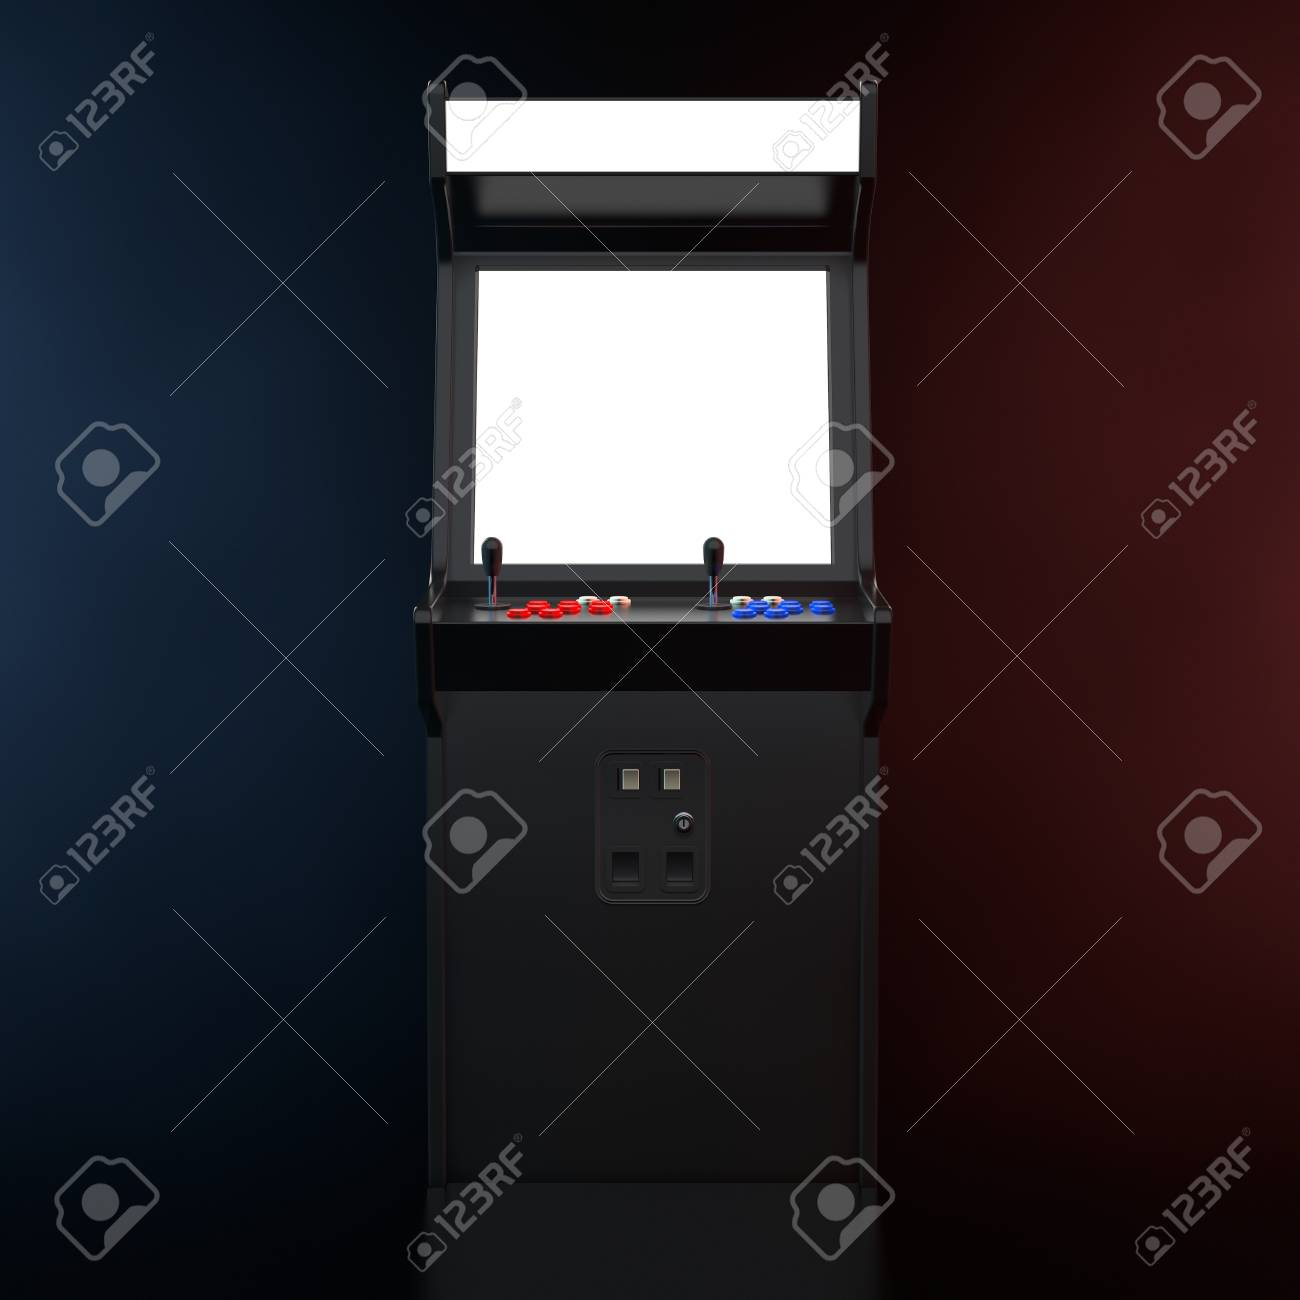 Gaming Arcade Machine With Blank Screen For Your Design In The